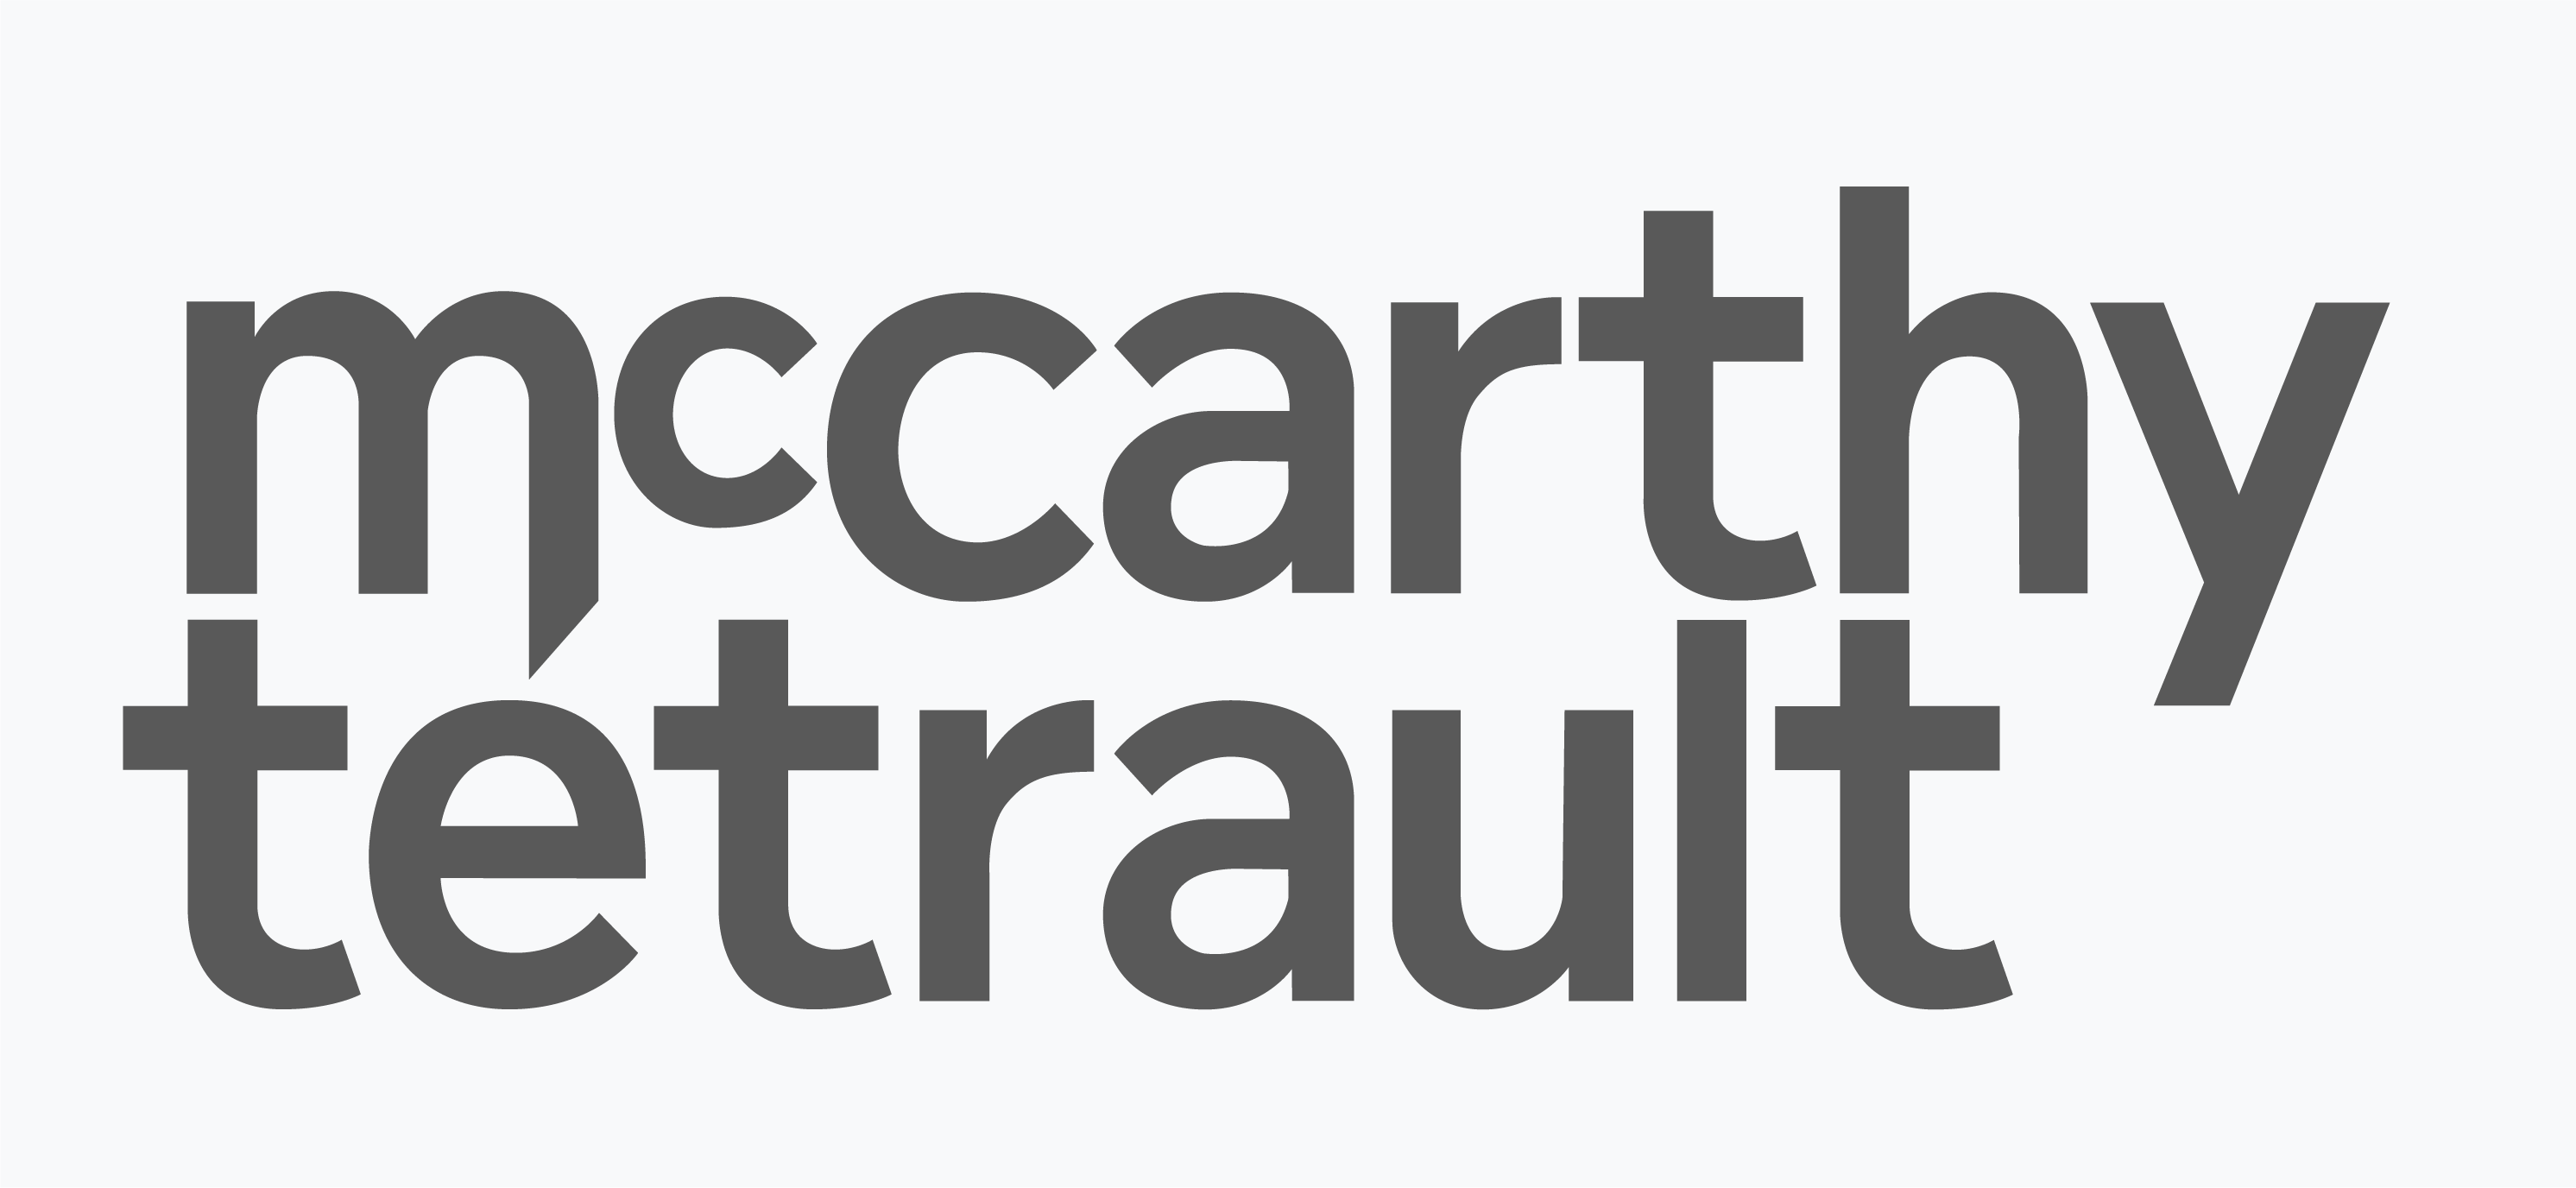 The logo for McCarthy Tetrault